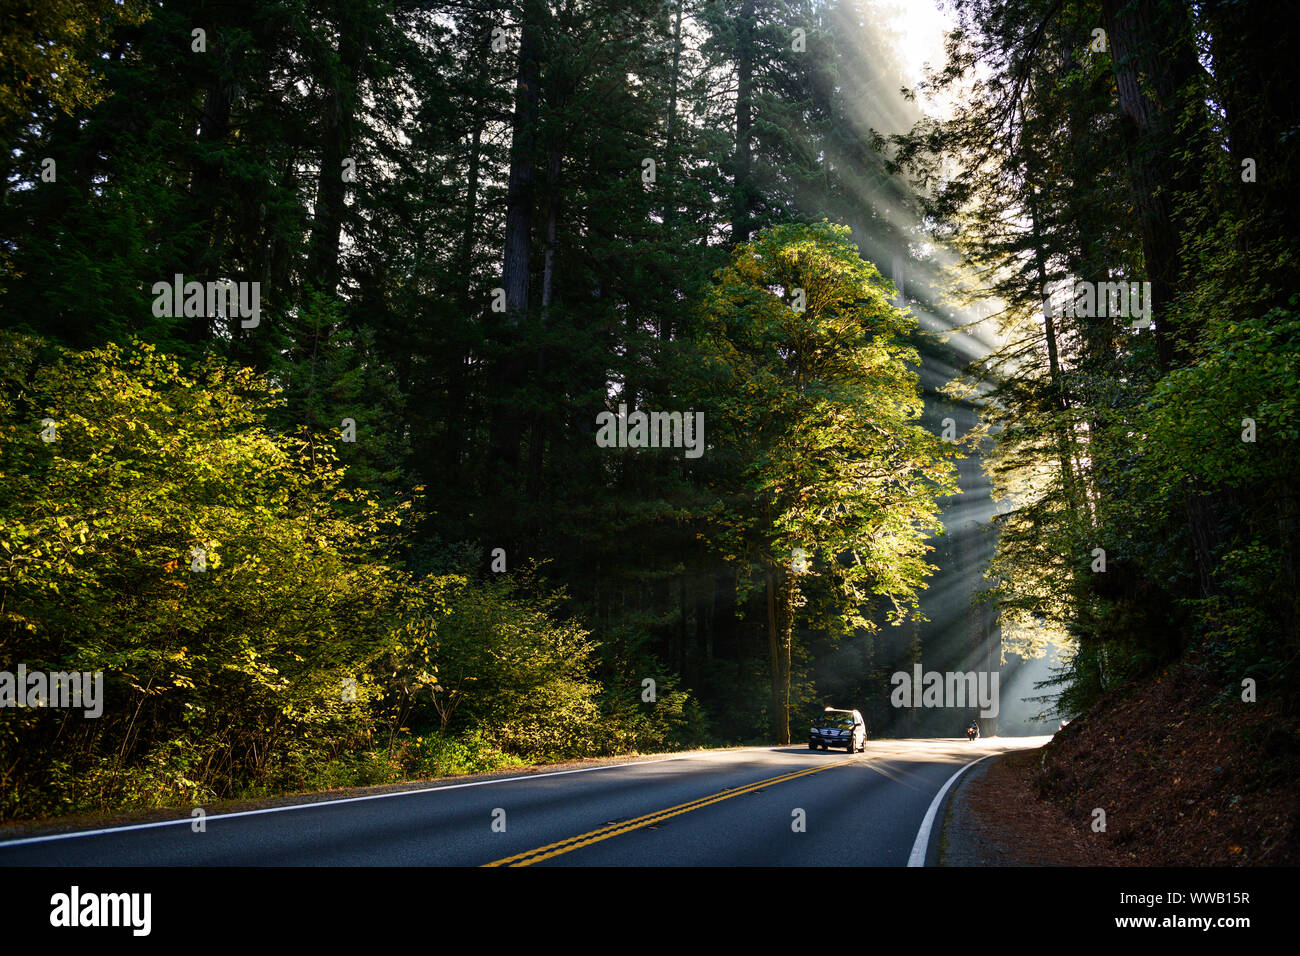 A road through groves of giant Sequoia and redwood trees with sun beams coming through the trees along the California Coast at the Redwoods National a Stock Photo